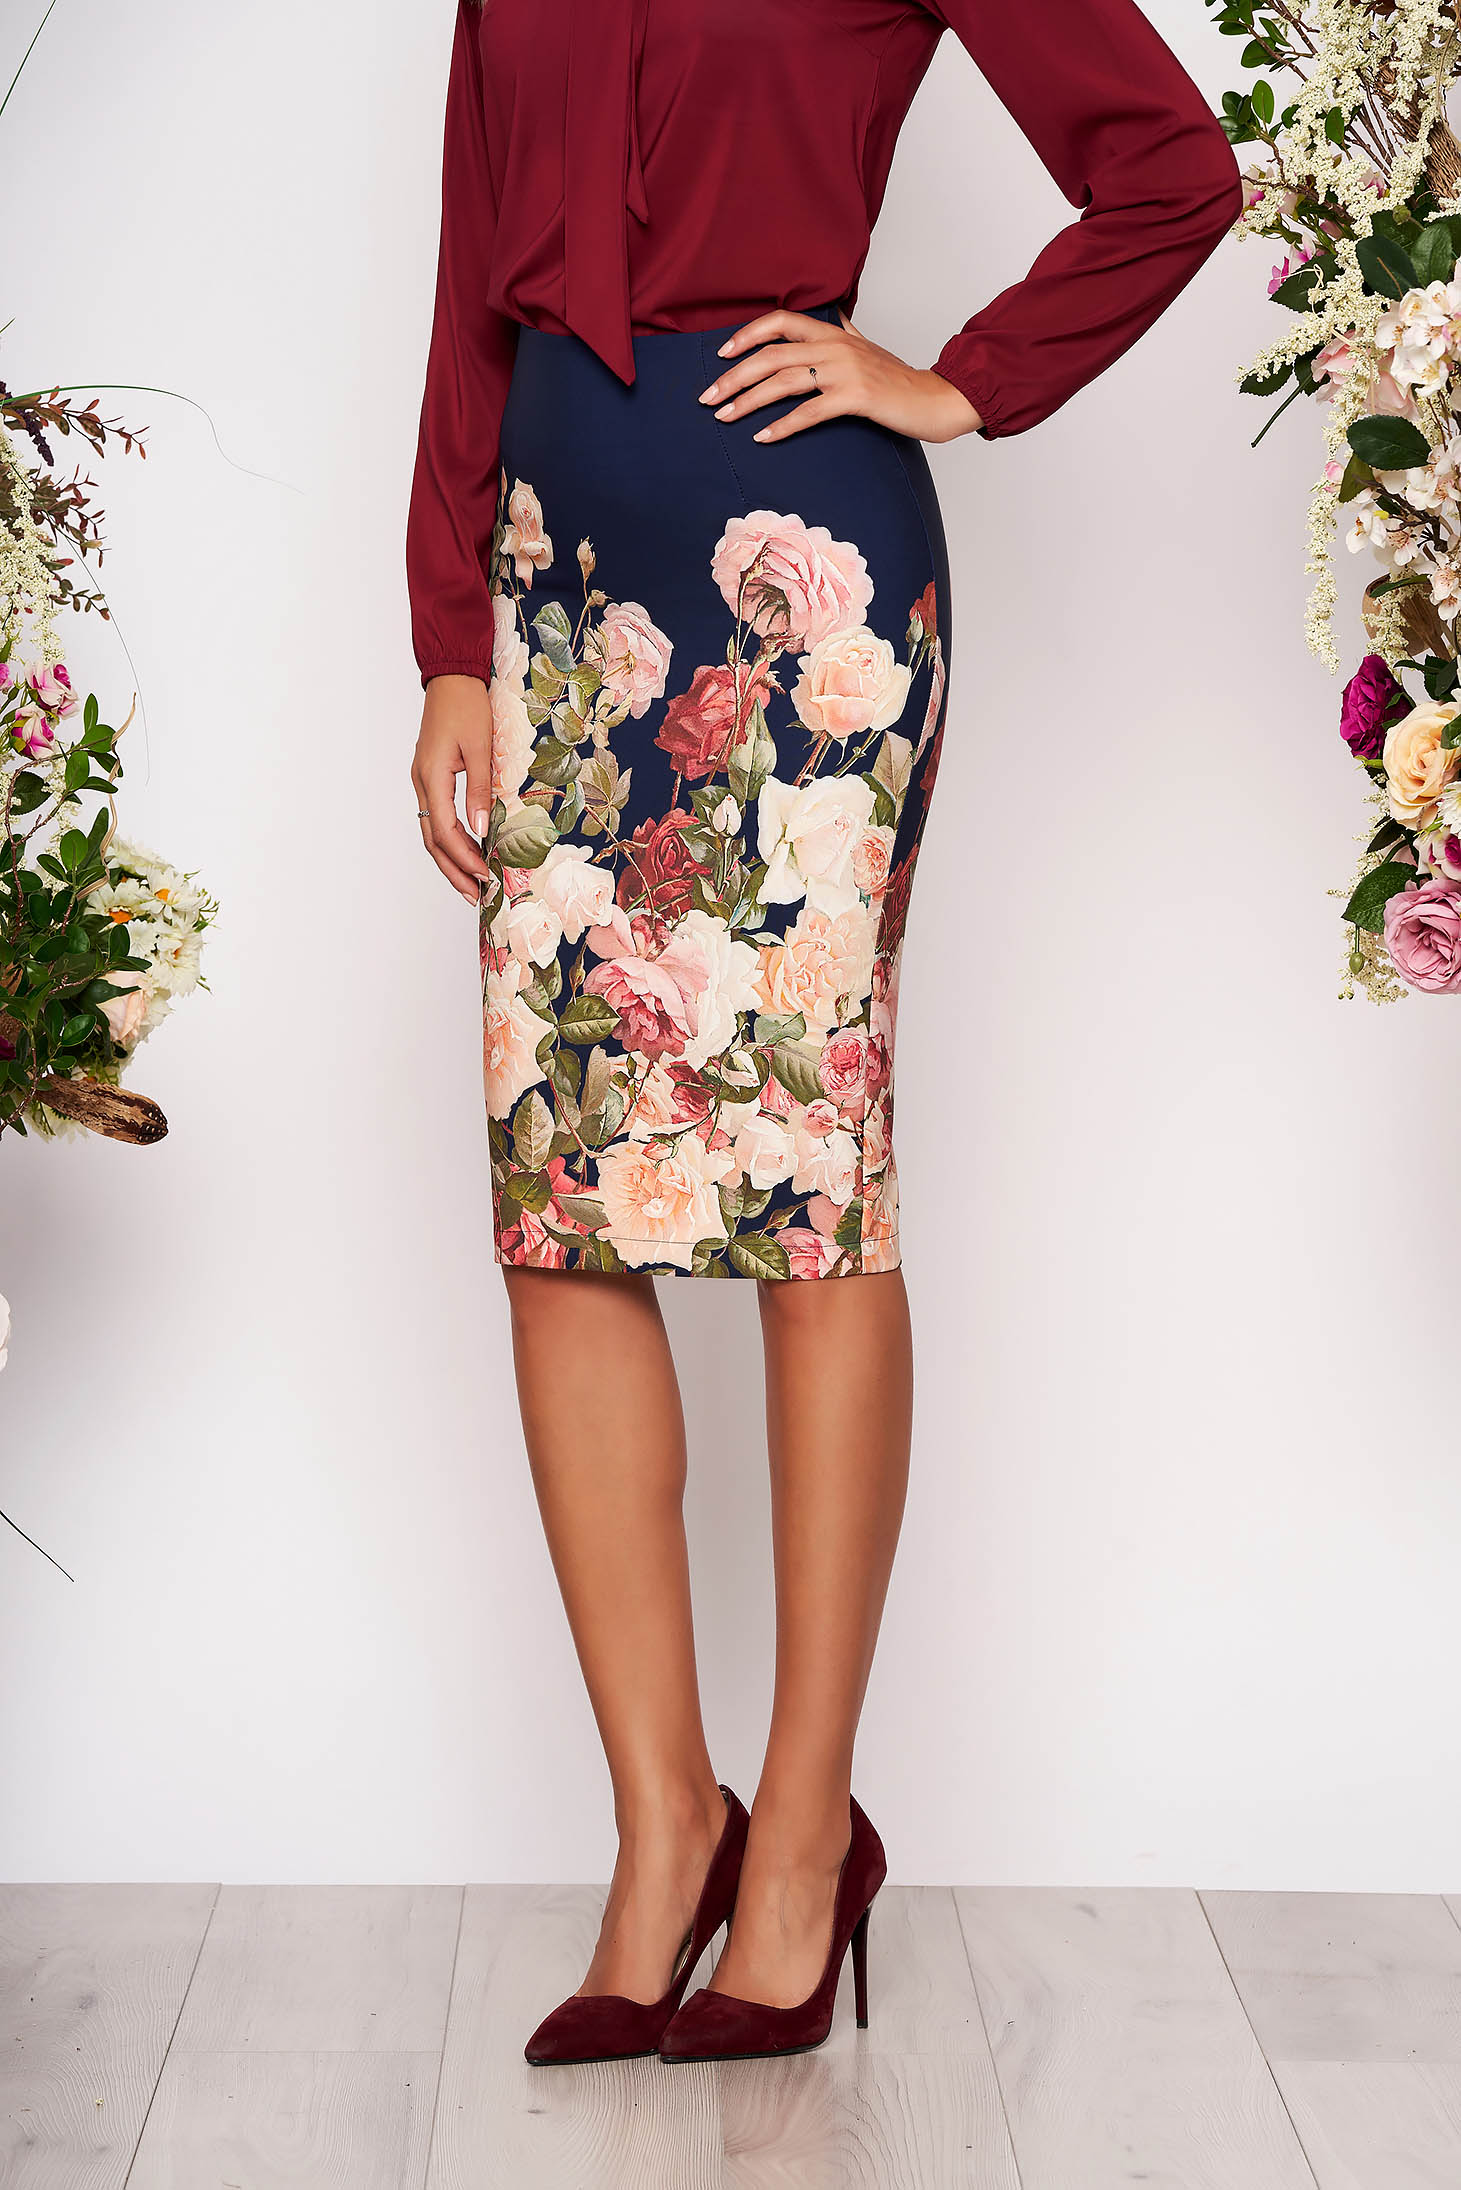 StarShinerS blue office midi pencil skirt slightly elastic fabric with floral prints